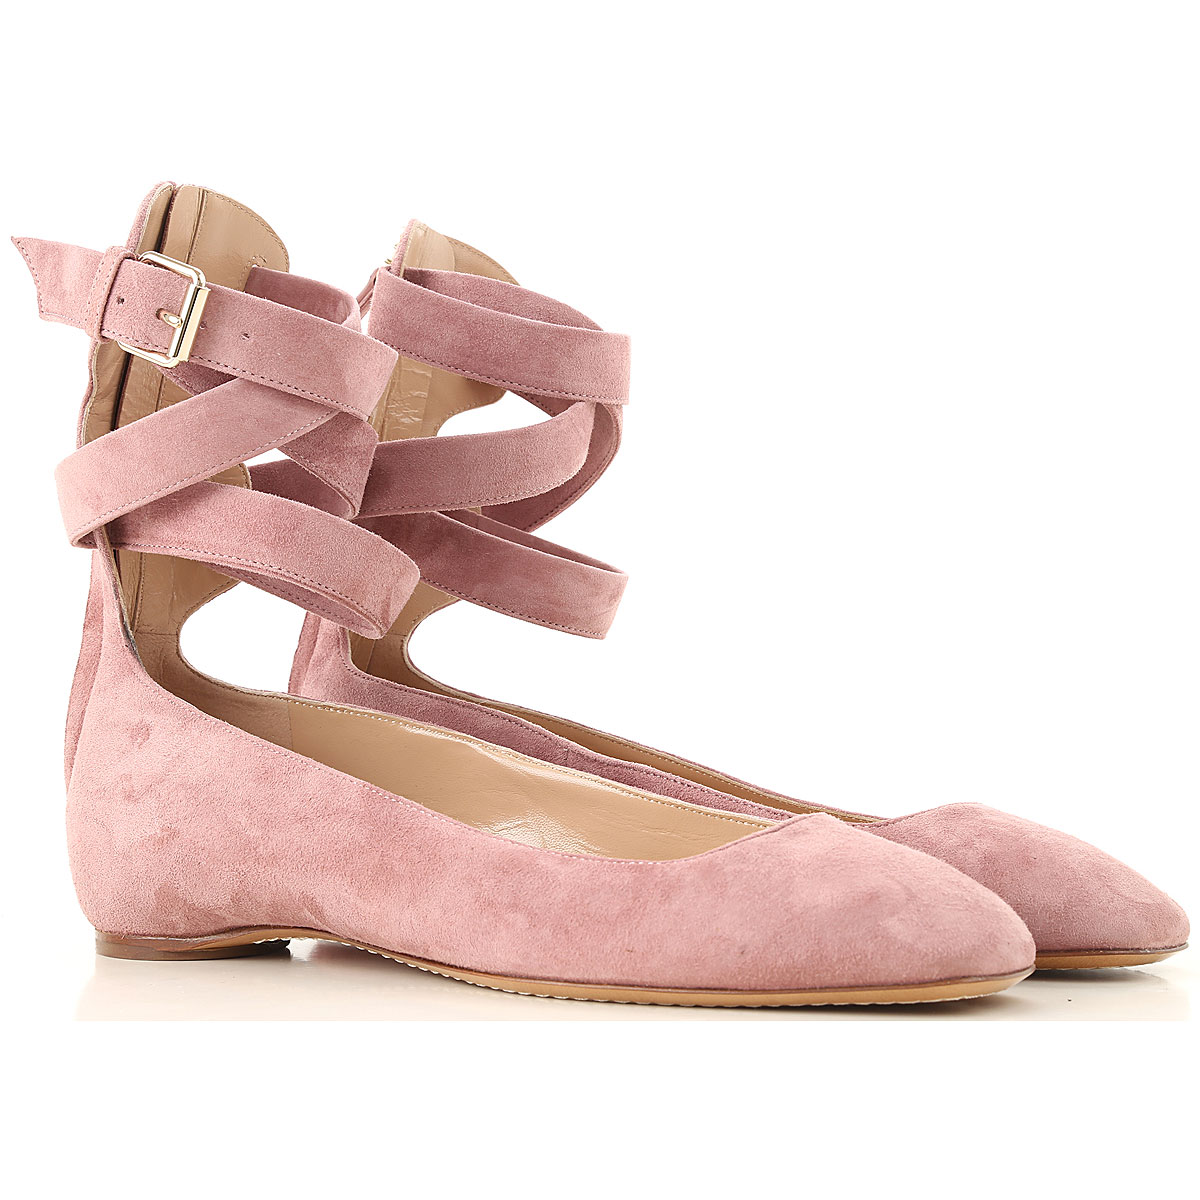 Valentino Garavani Ballet Flats Ballerina Shoes for Women On Sale in Outlet, Antique Rose, Suede leather, 2019, 10 6 6.5 7 8 8.5 9 9.5